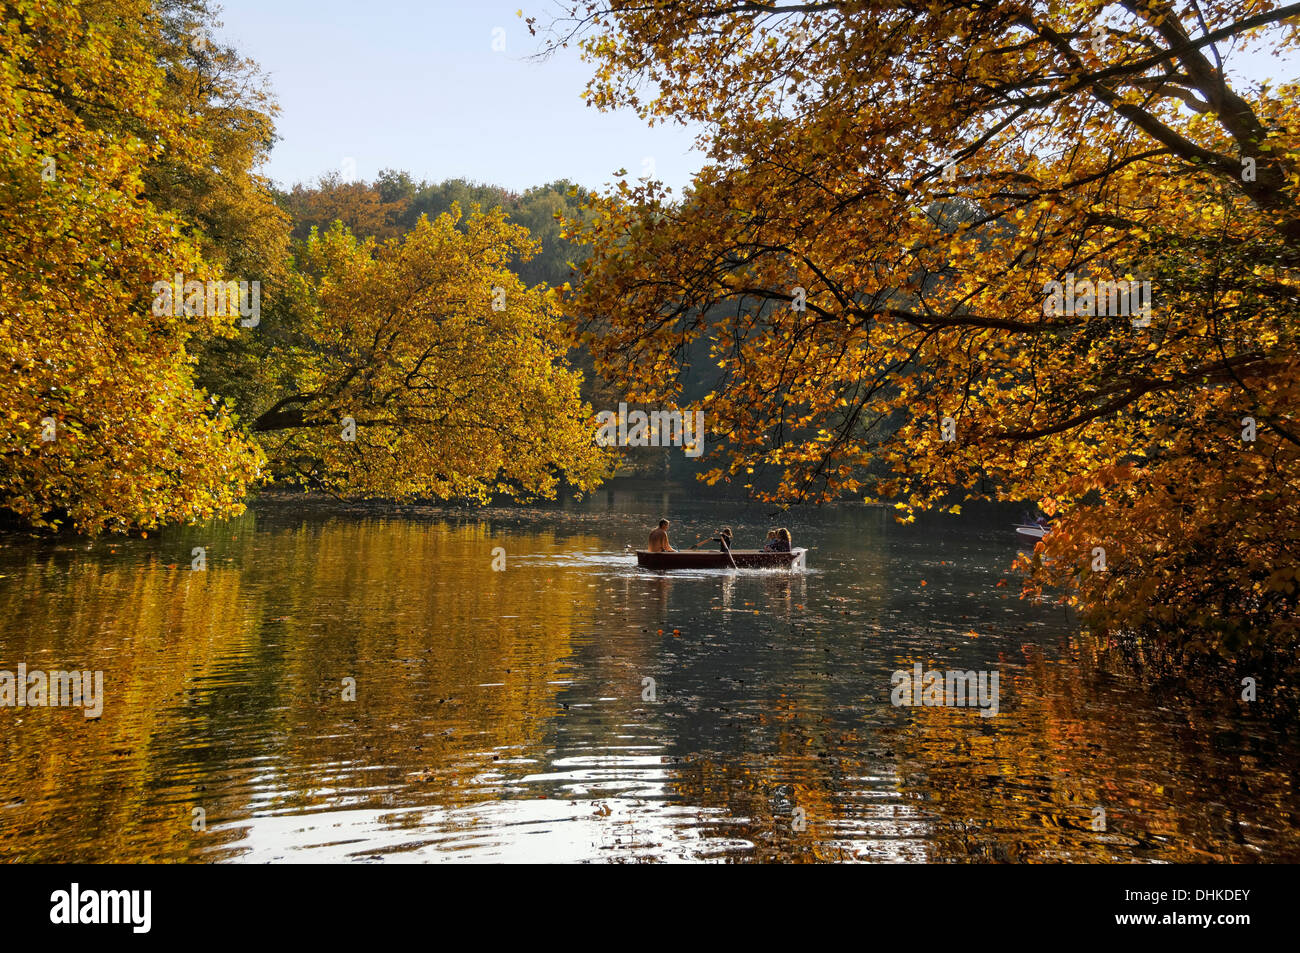 Lake in Tiergarten in autumn with rowing boats, Berlin Center, Berlin, Germany Stock Photo